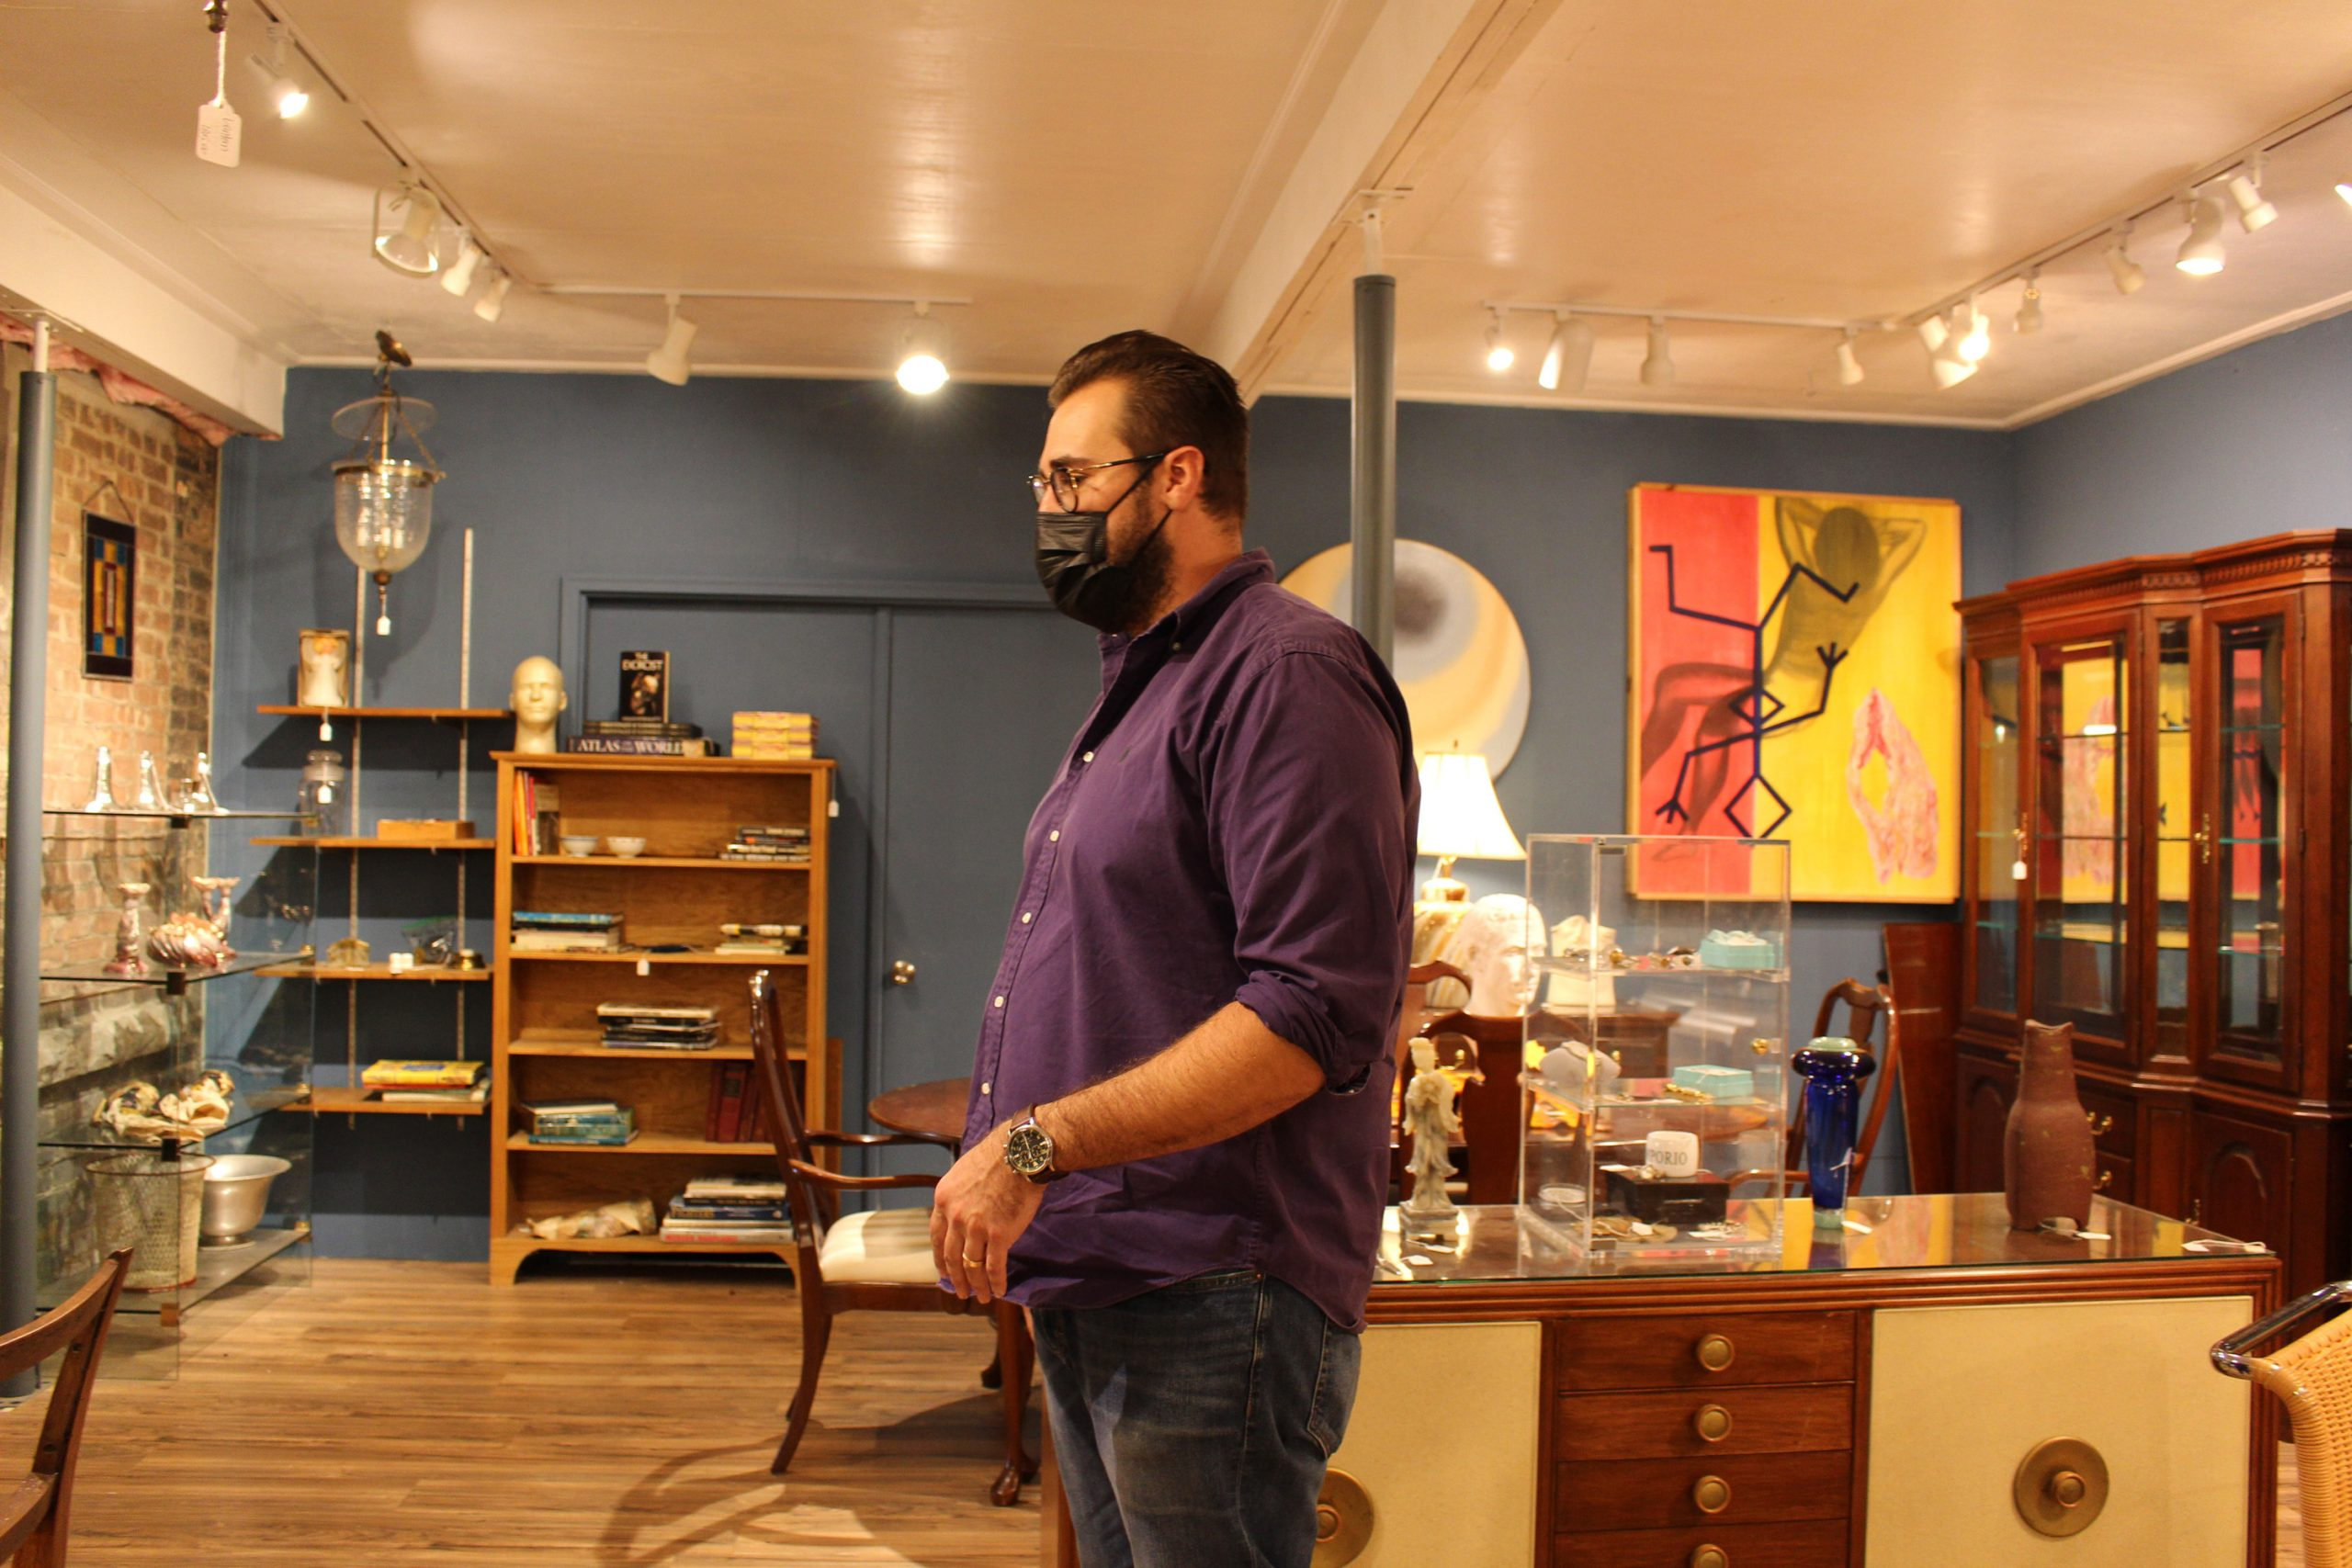 Syracuse Antiques Exchange co-owner Matt Pastore stands among furniture in the store